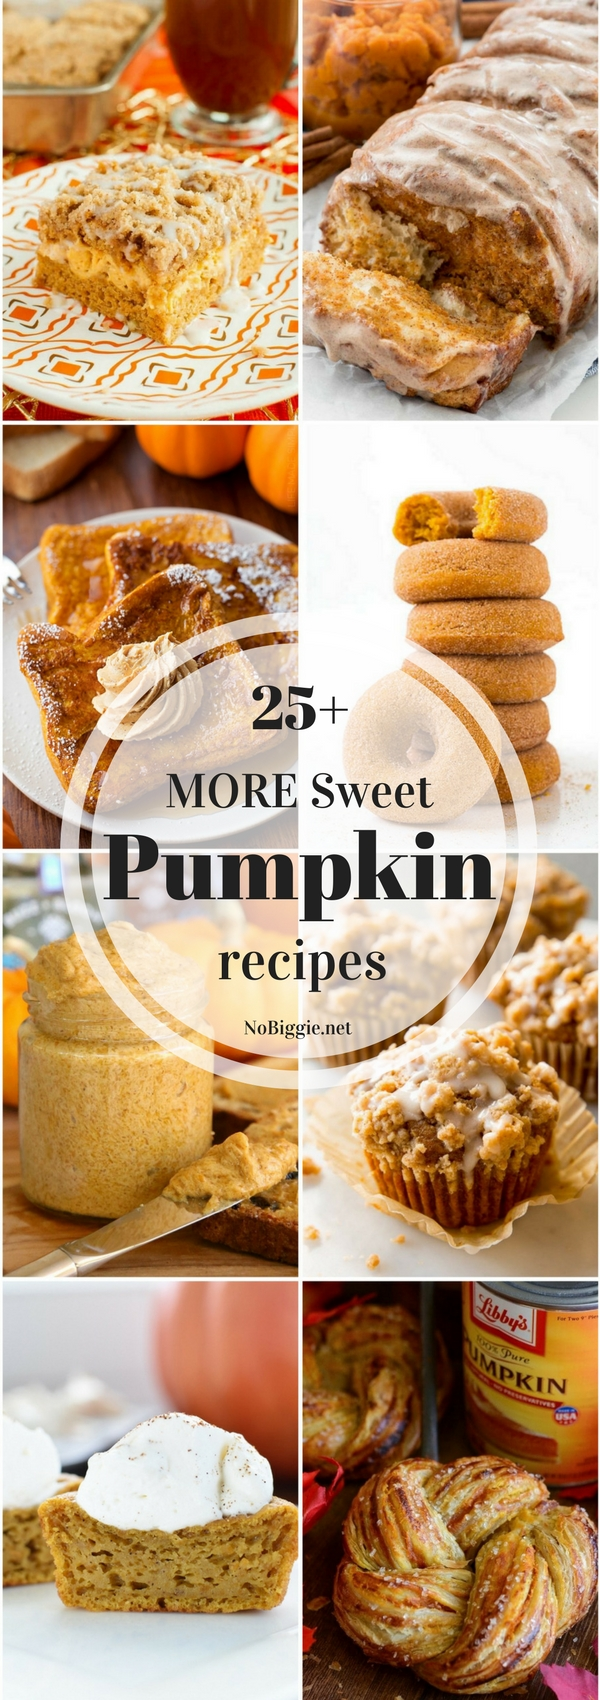 25+ More Sweet Pumpkin Recipes | NoBiggie.net